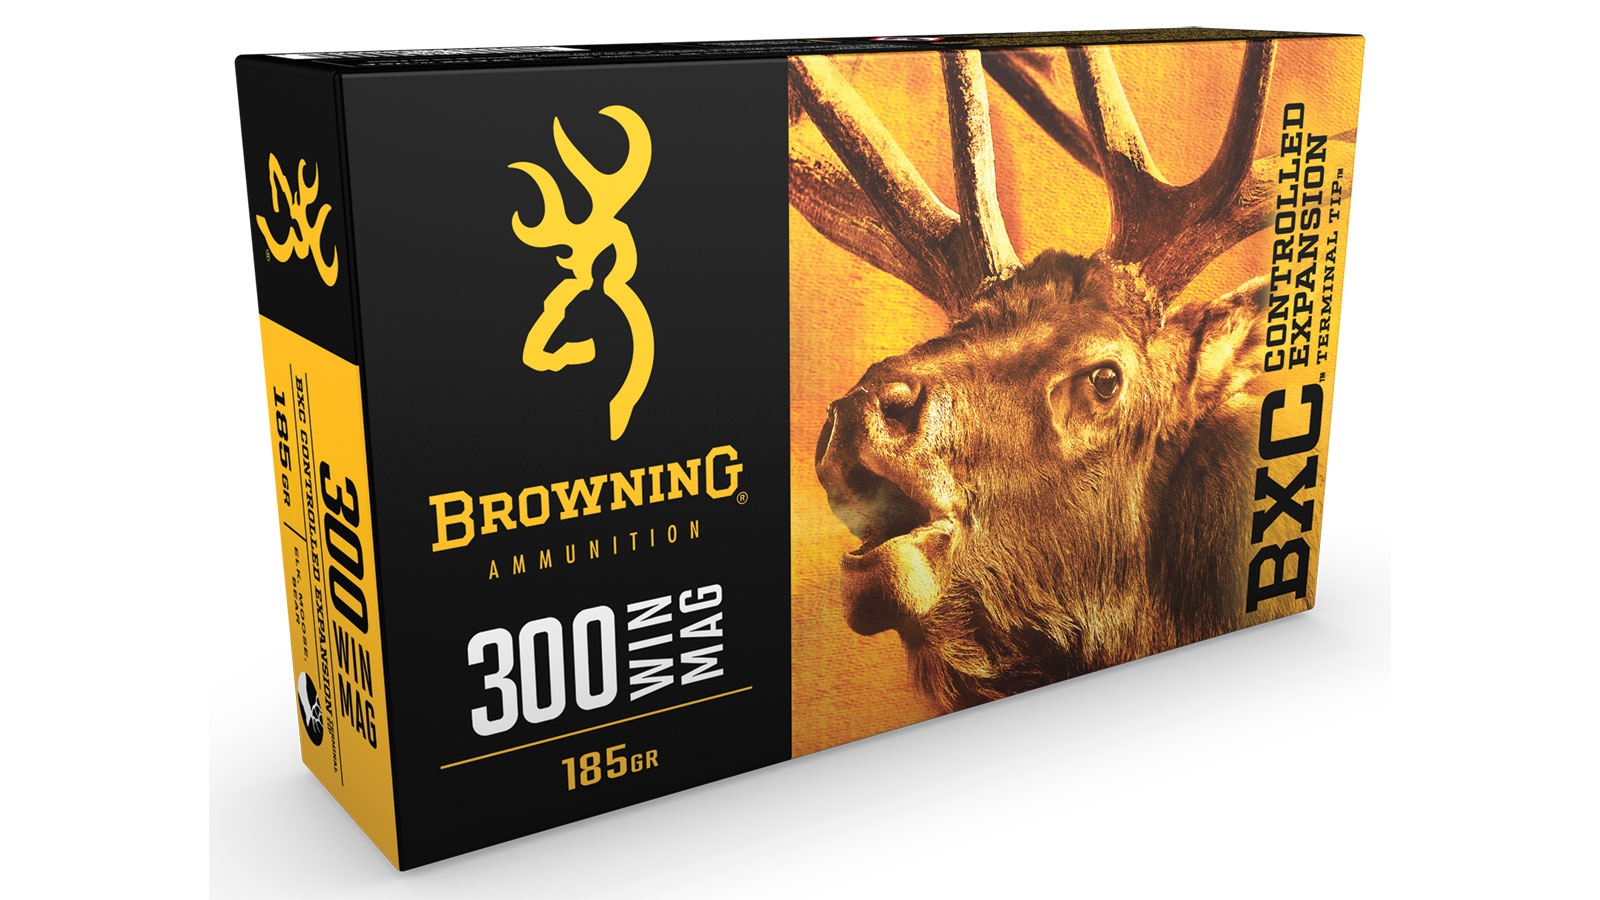 Browning Ammo B192203001 BXC Controlled Expansion 300 Win Mag 185 GR Terminal Tip 20 Bx| 10 Cs